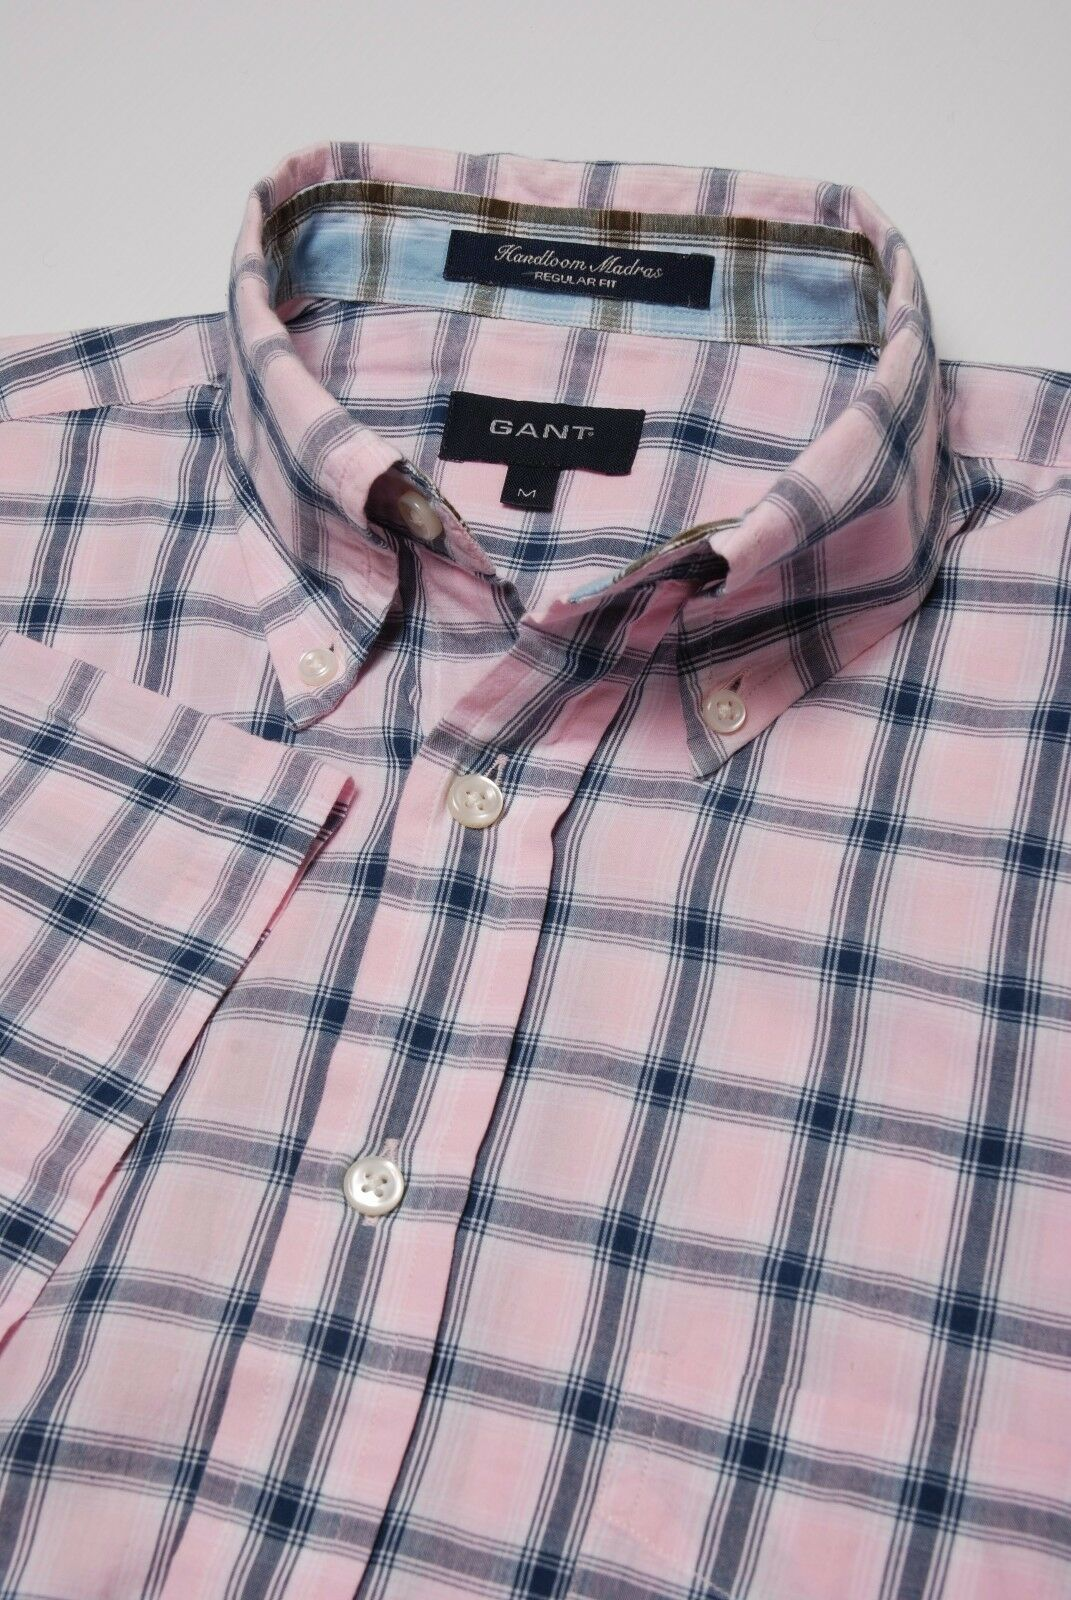 GANT Shirt Medium by Handskull (UK) Chequed style pink bluee